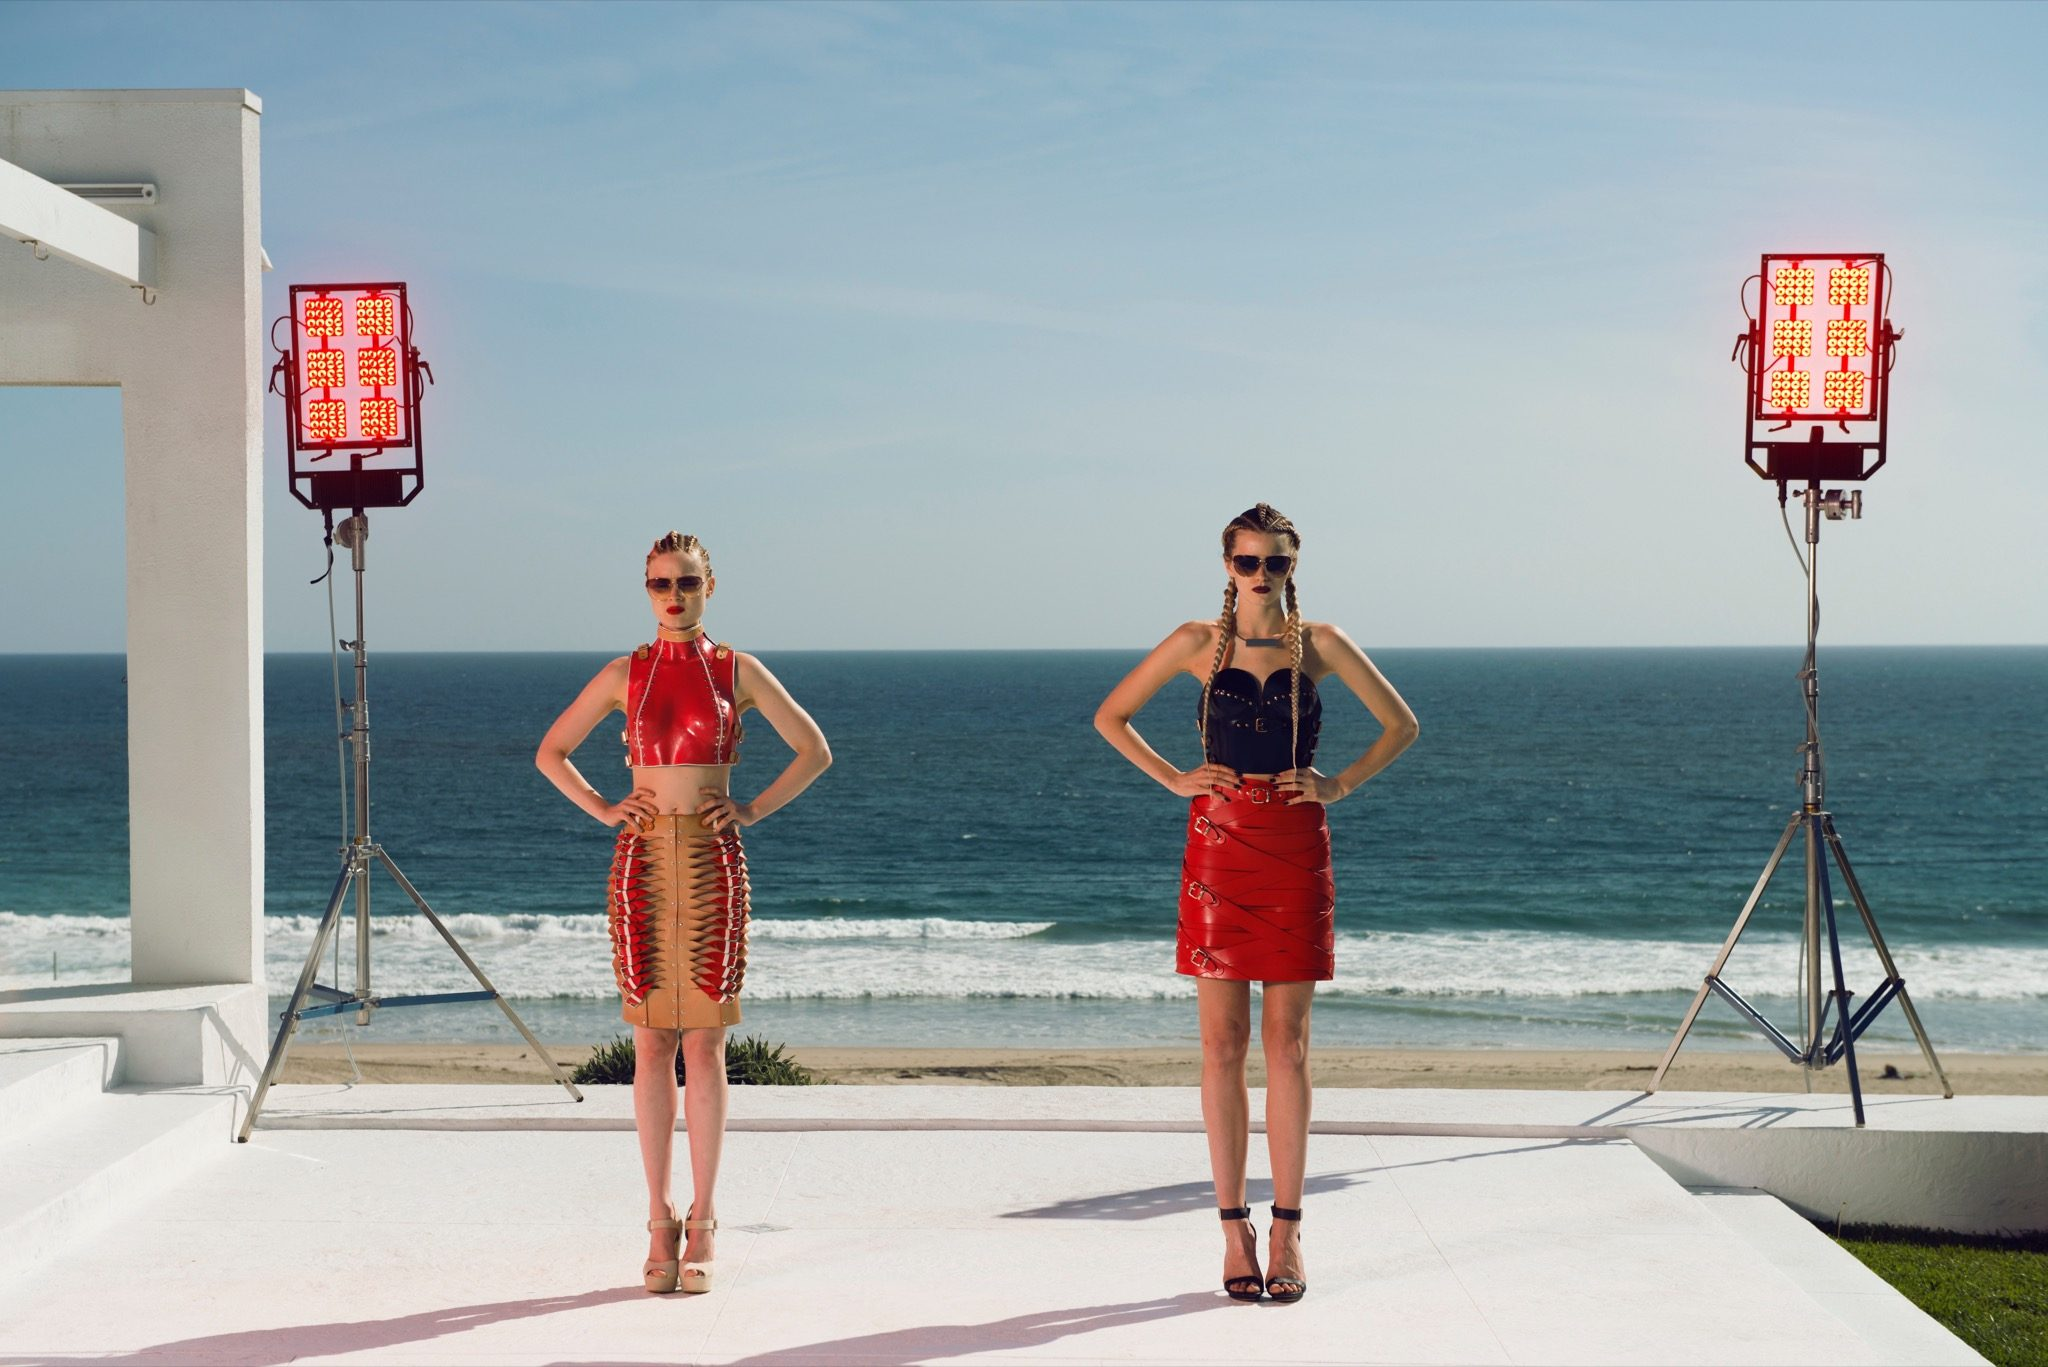 The Neon Demon images-7